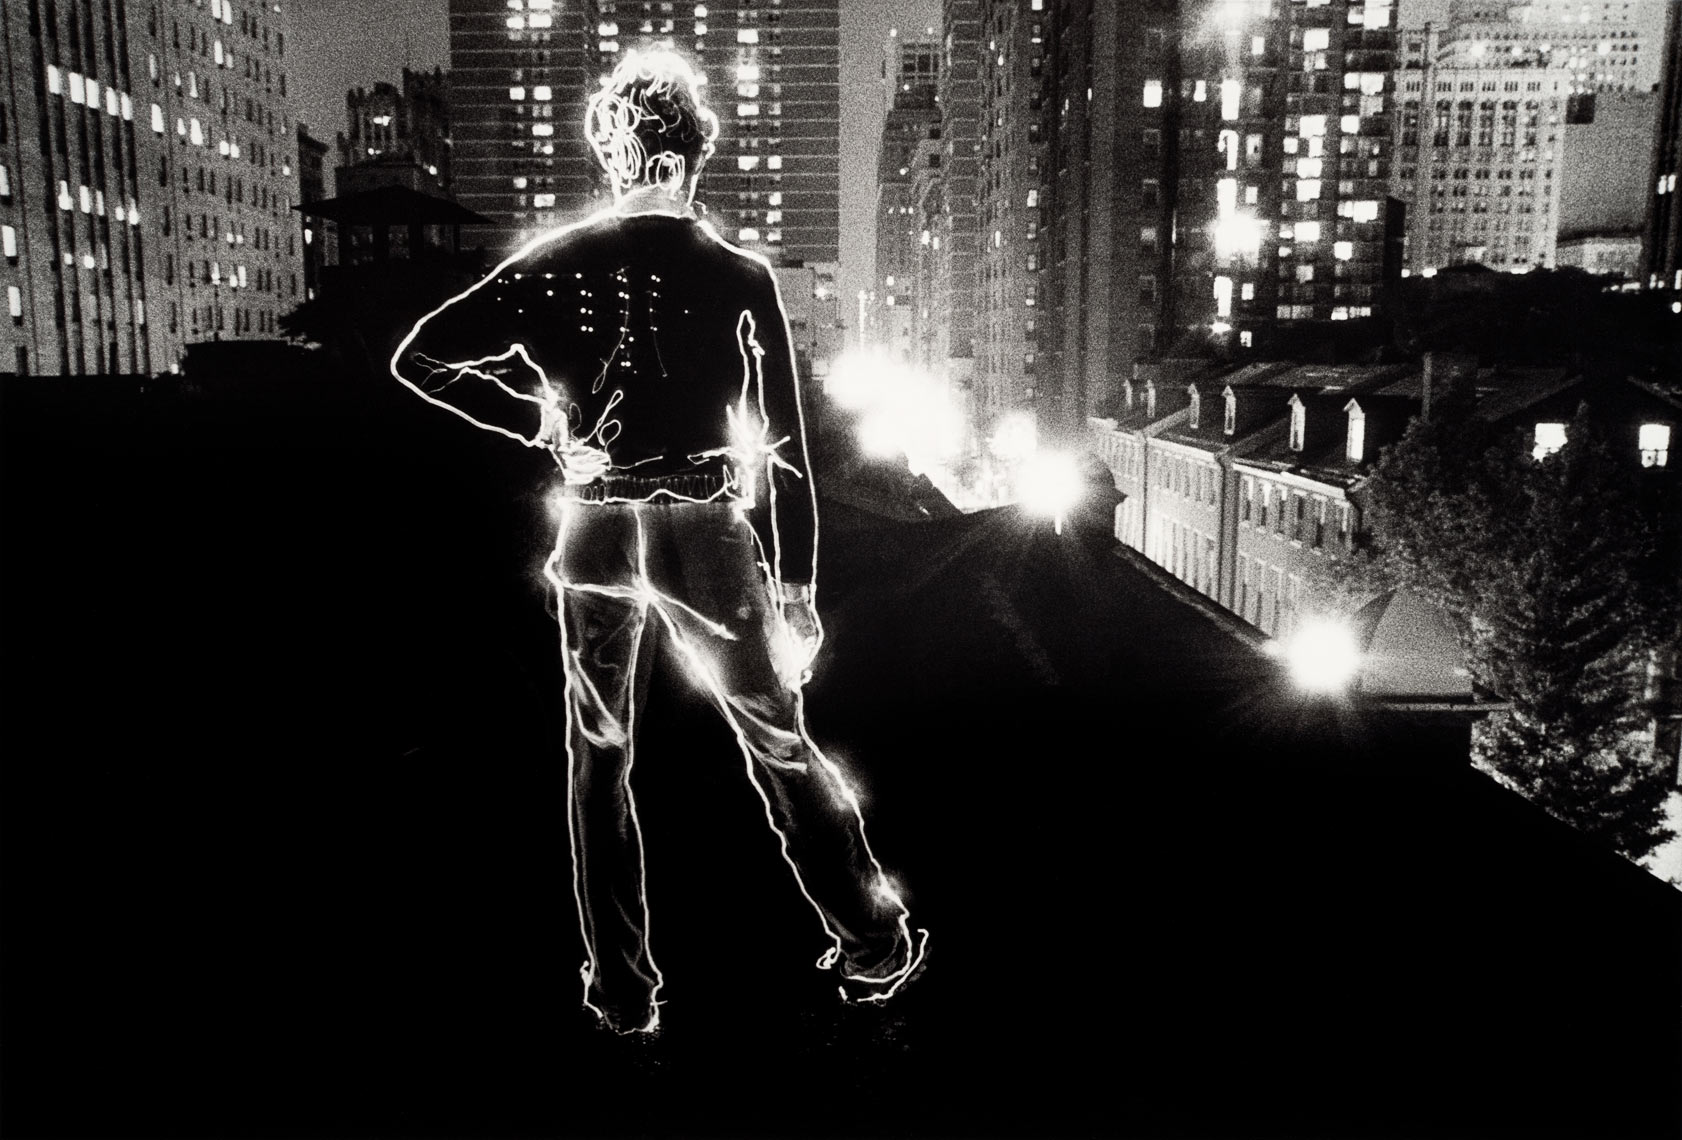 David Lebe; Angelo On The Roof, 1979, light drawing, black and white photograph